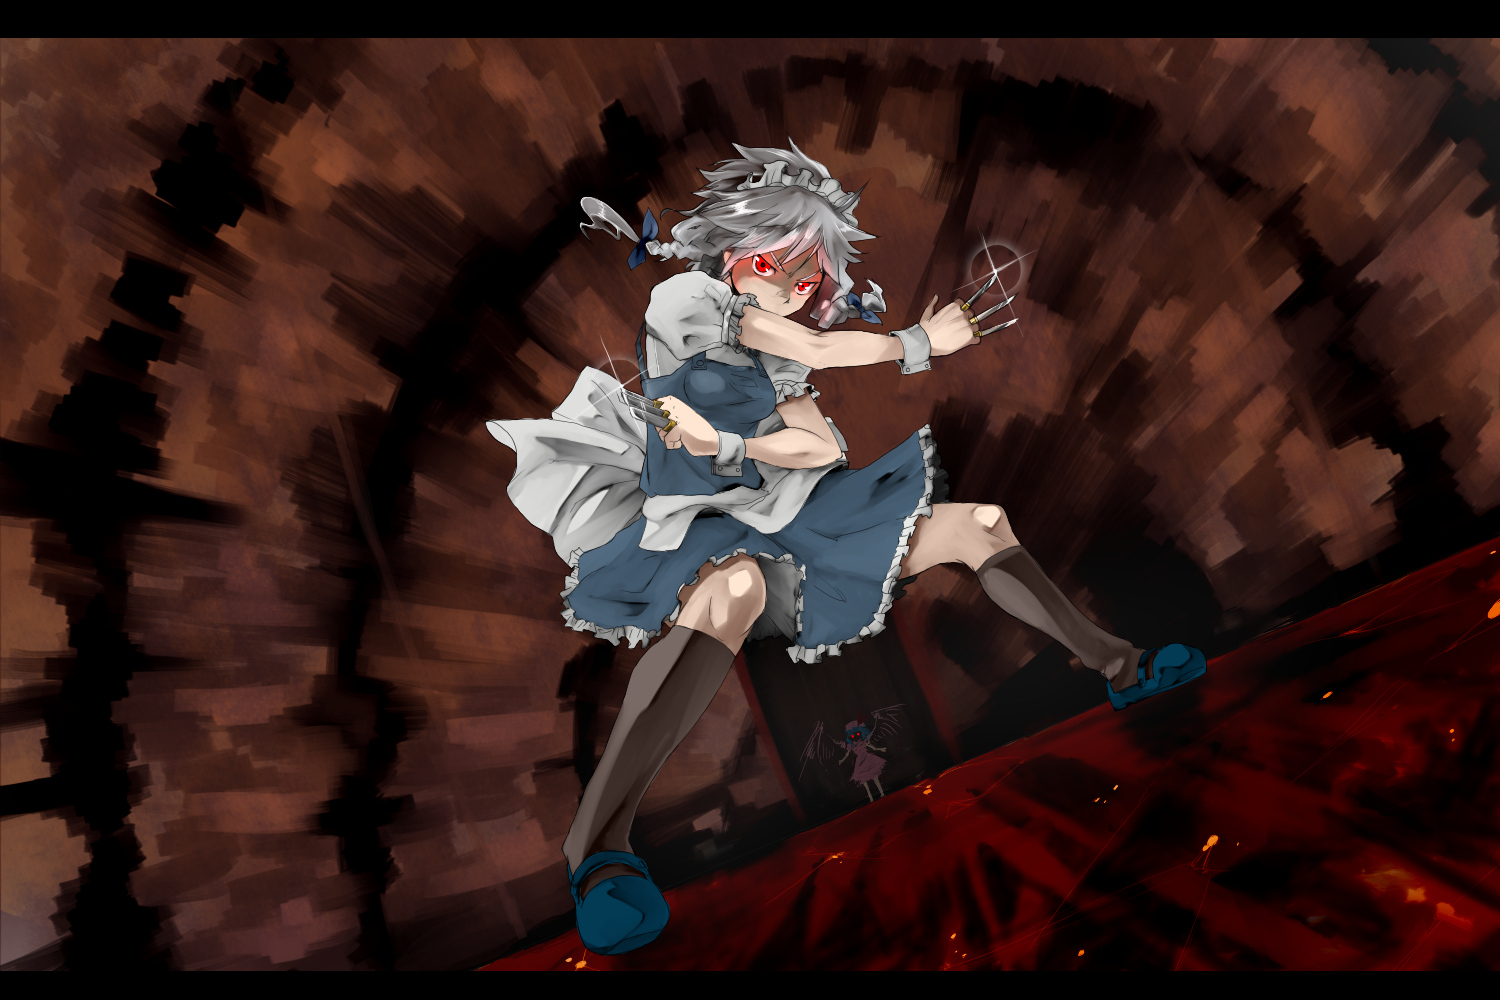 braids gray_hair hat izayoi_sakuya knife maid red_eyes remilia_scarlet short_hair touhou vampire wings yokohachi